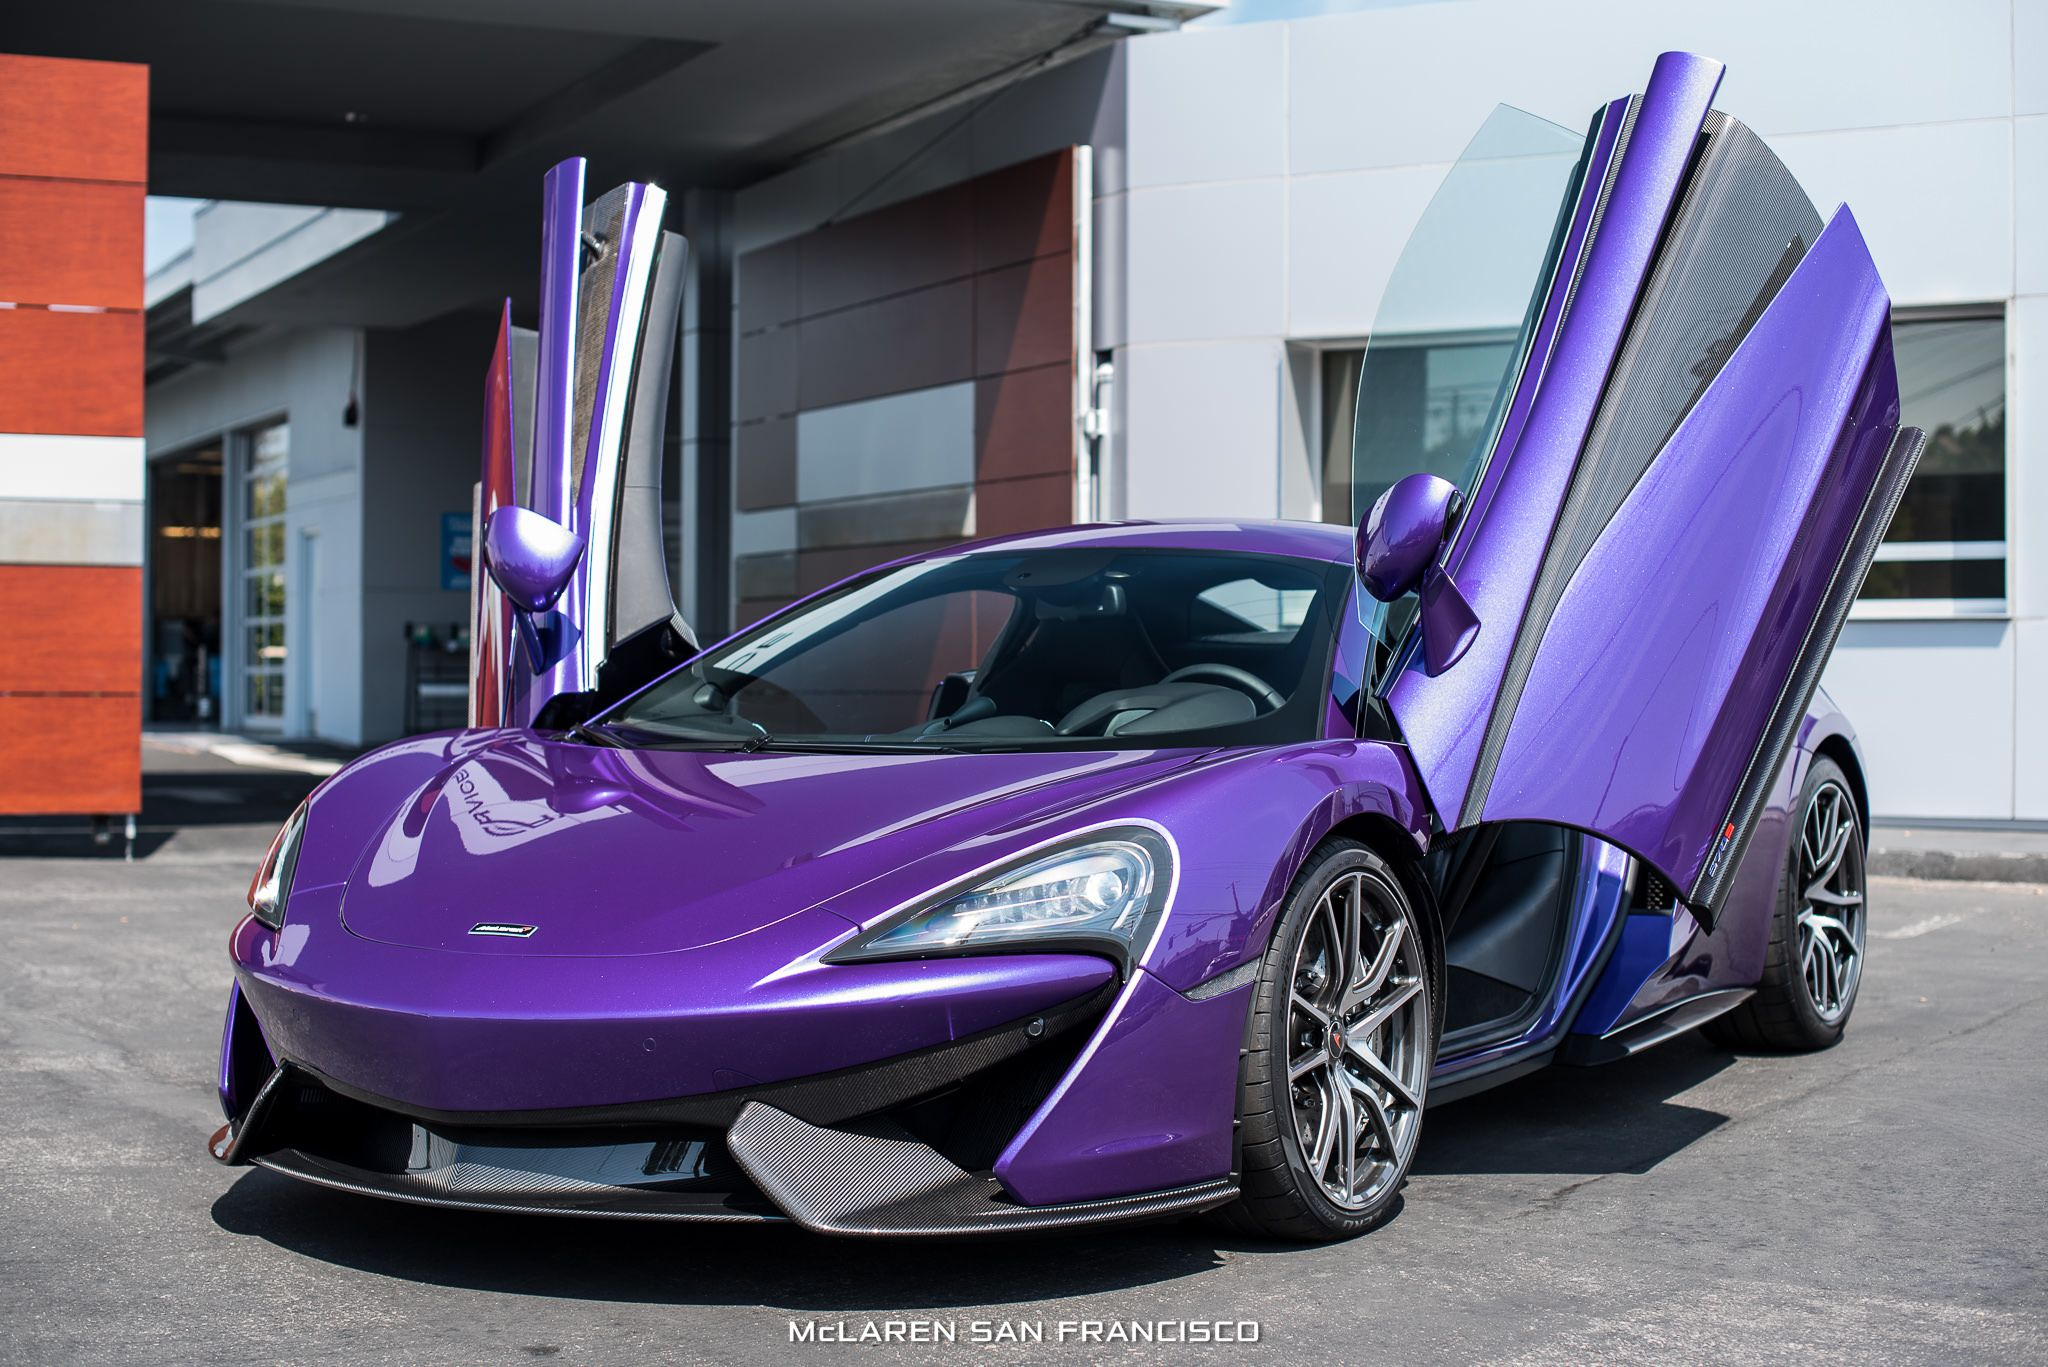 Beautiful Mauveine Blue Mclaren 570s Front Side Doors Up Sssupersports Com Mclaren 570s Mclaren Side Door